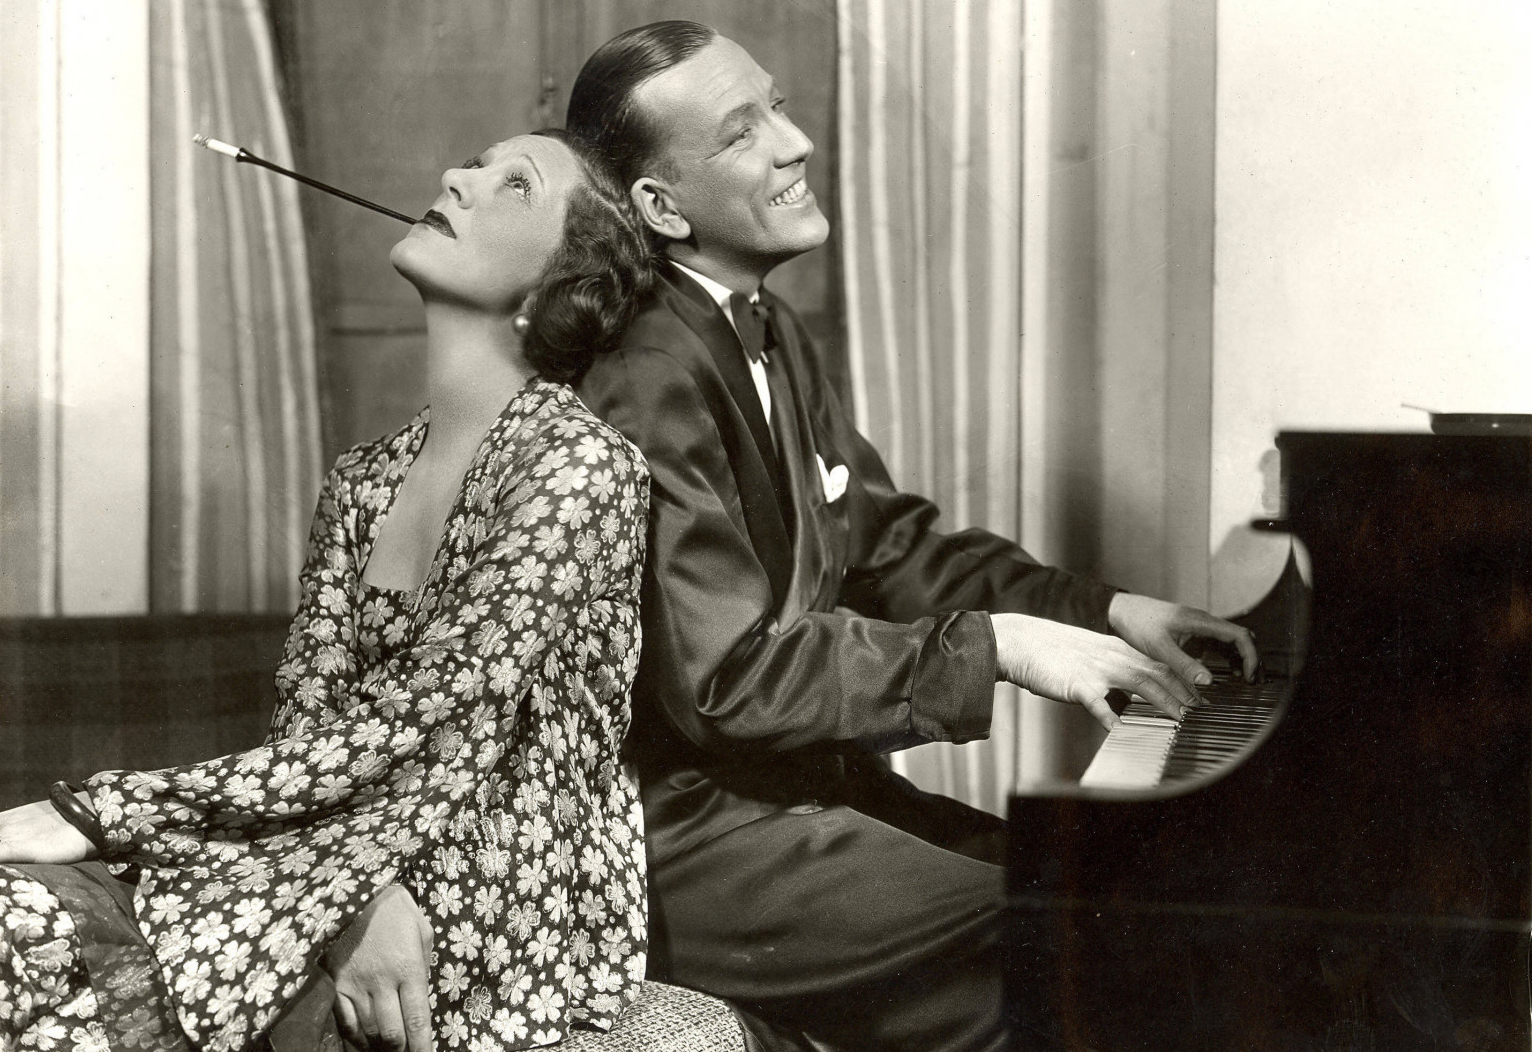 Noel Coward art and style Guildhall Art Gallery to 23 December 2021